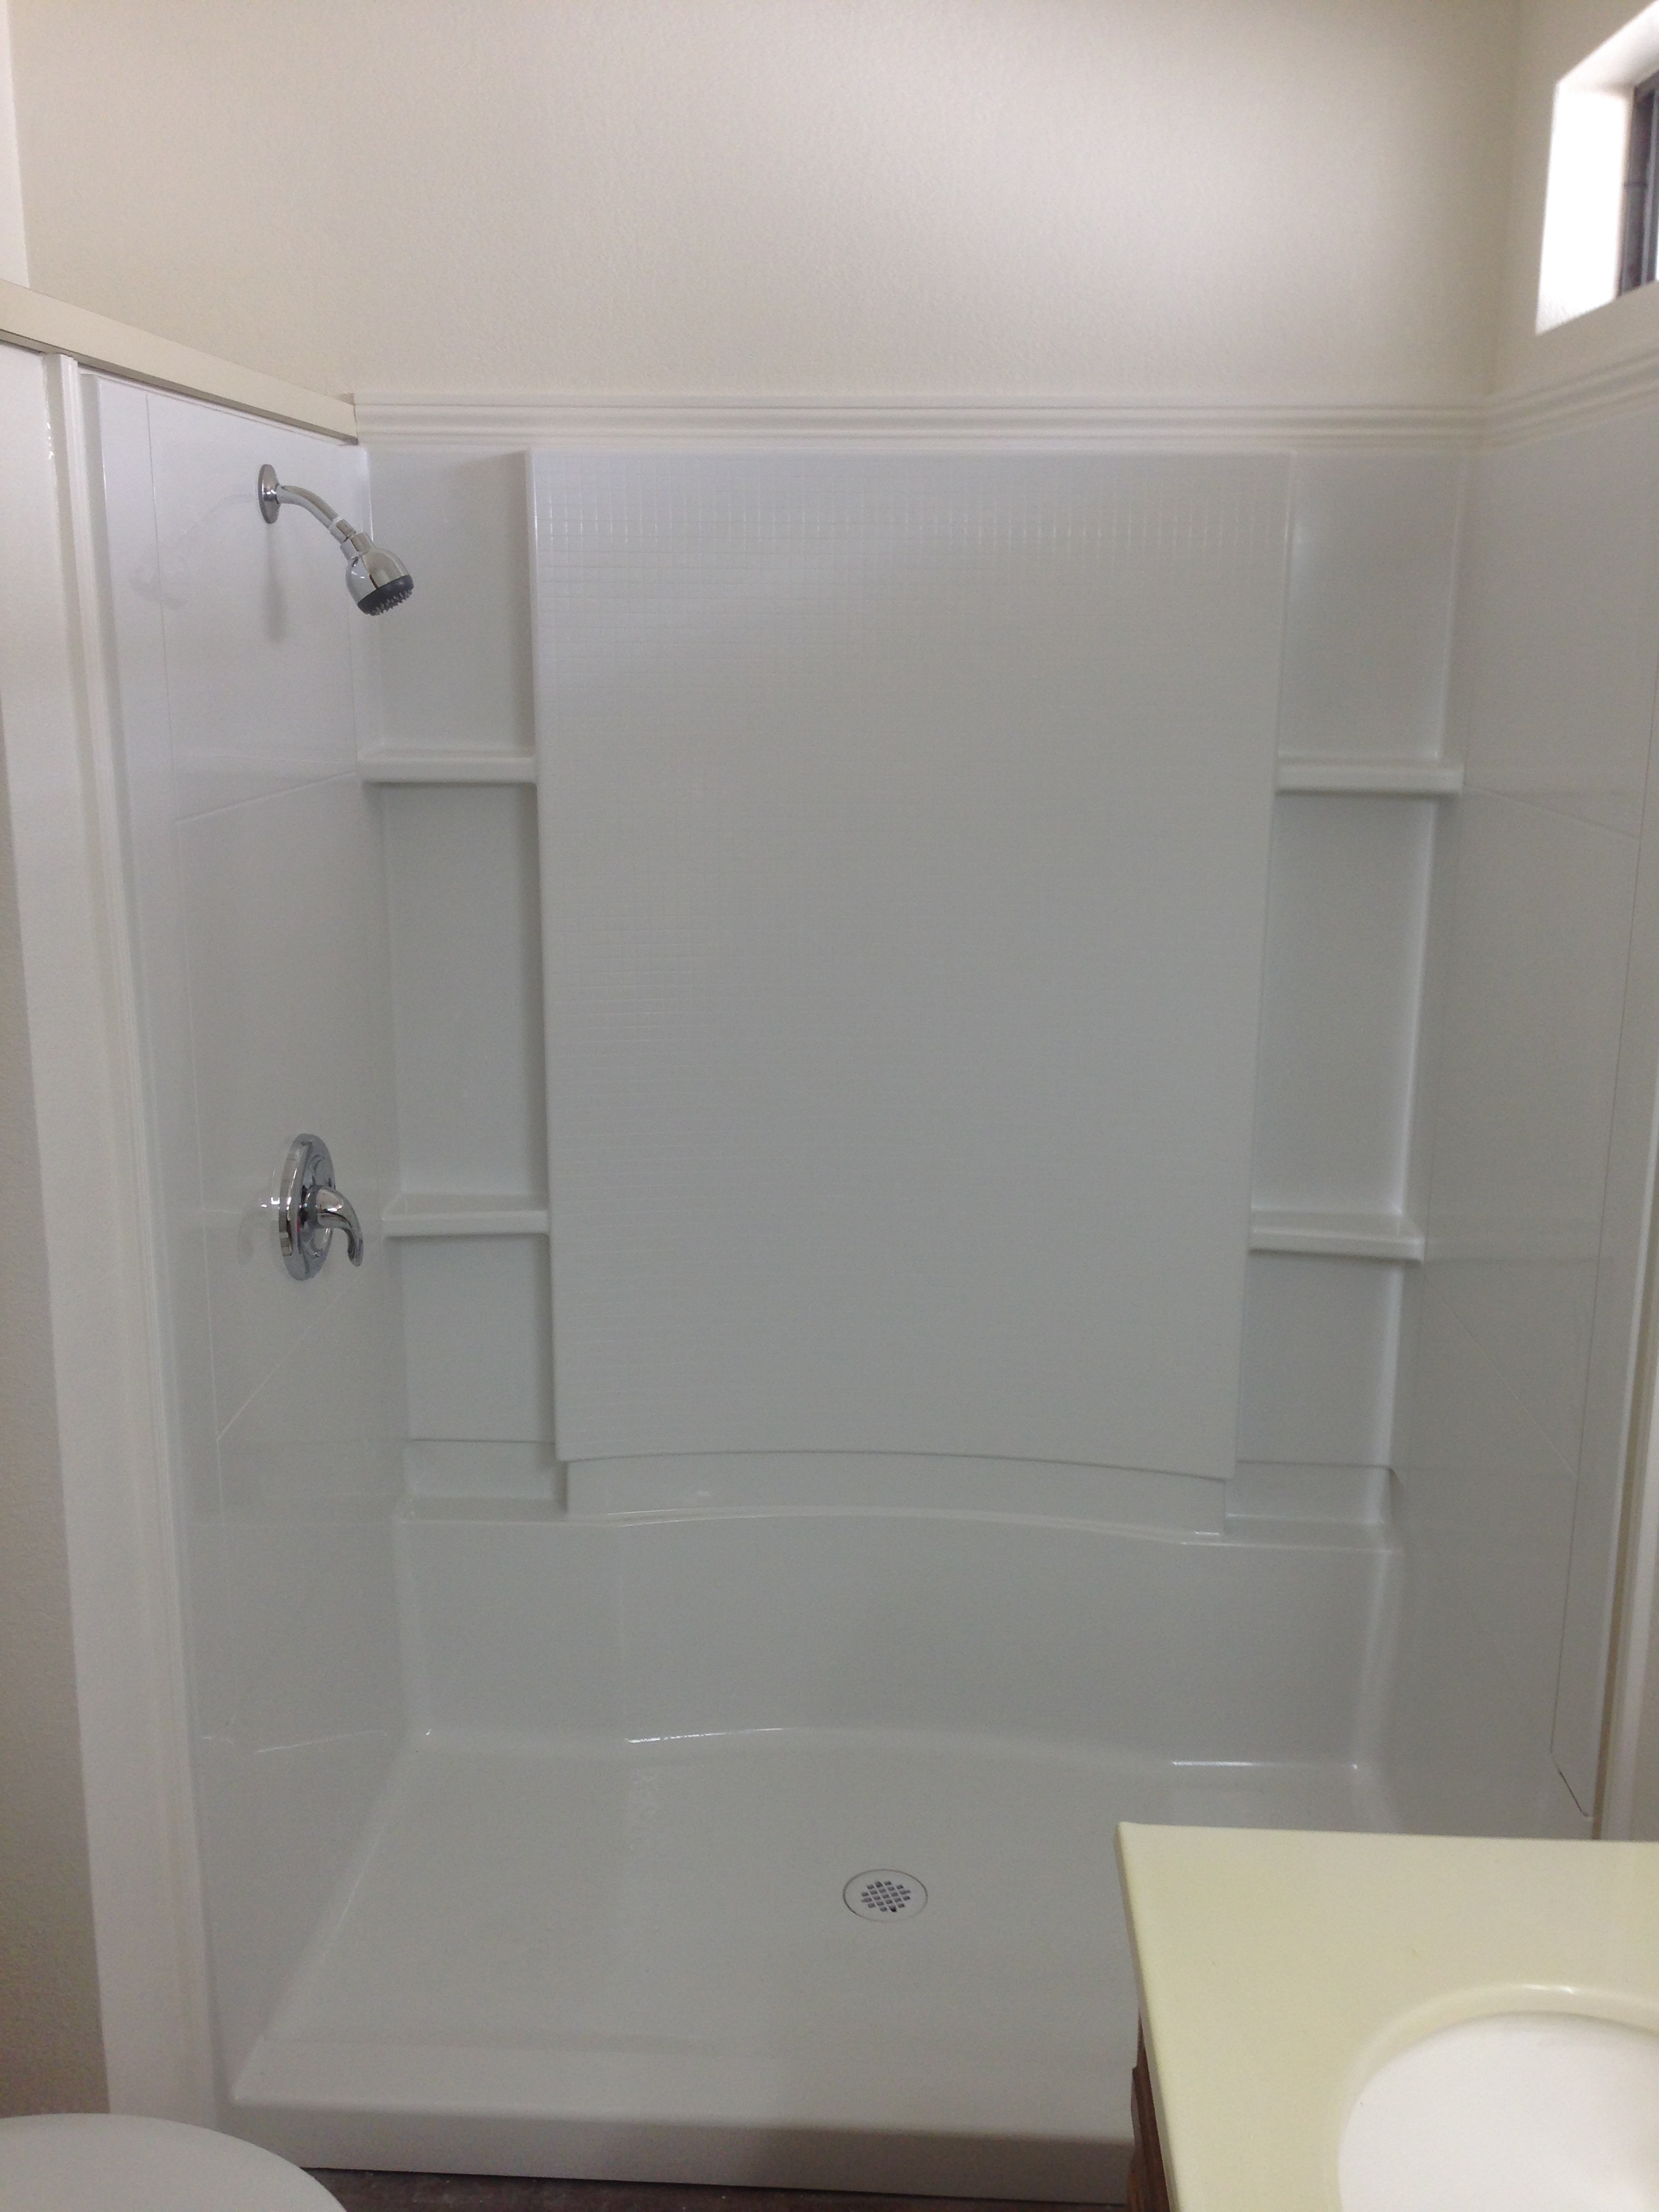 NEW SHOWERS & TUBS